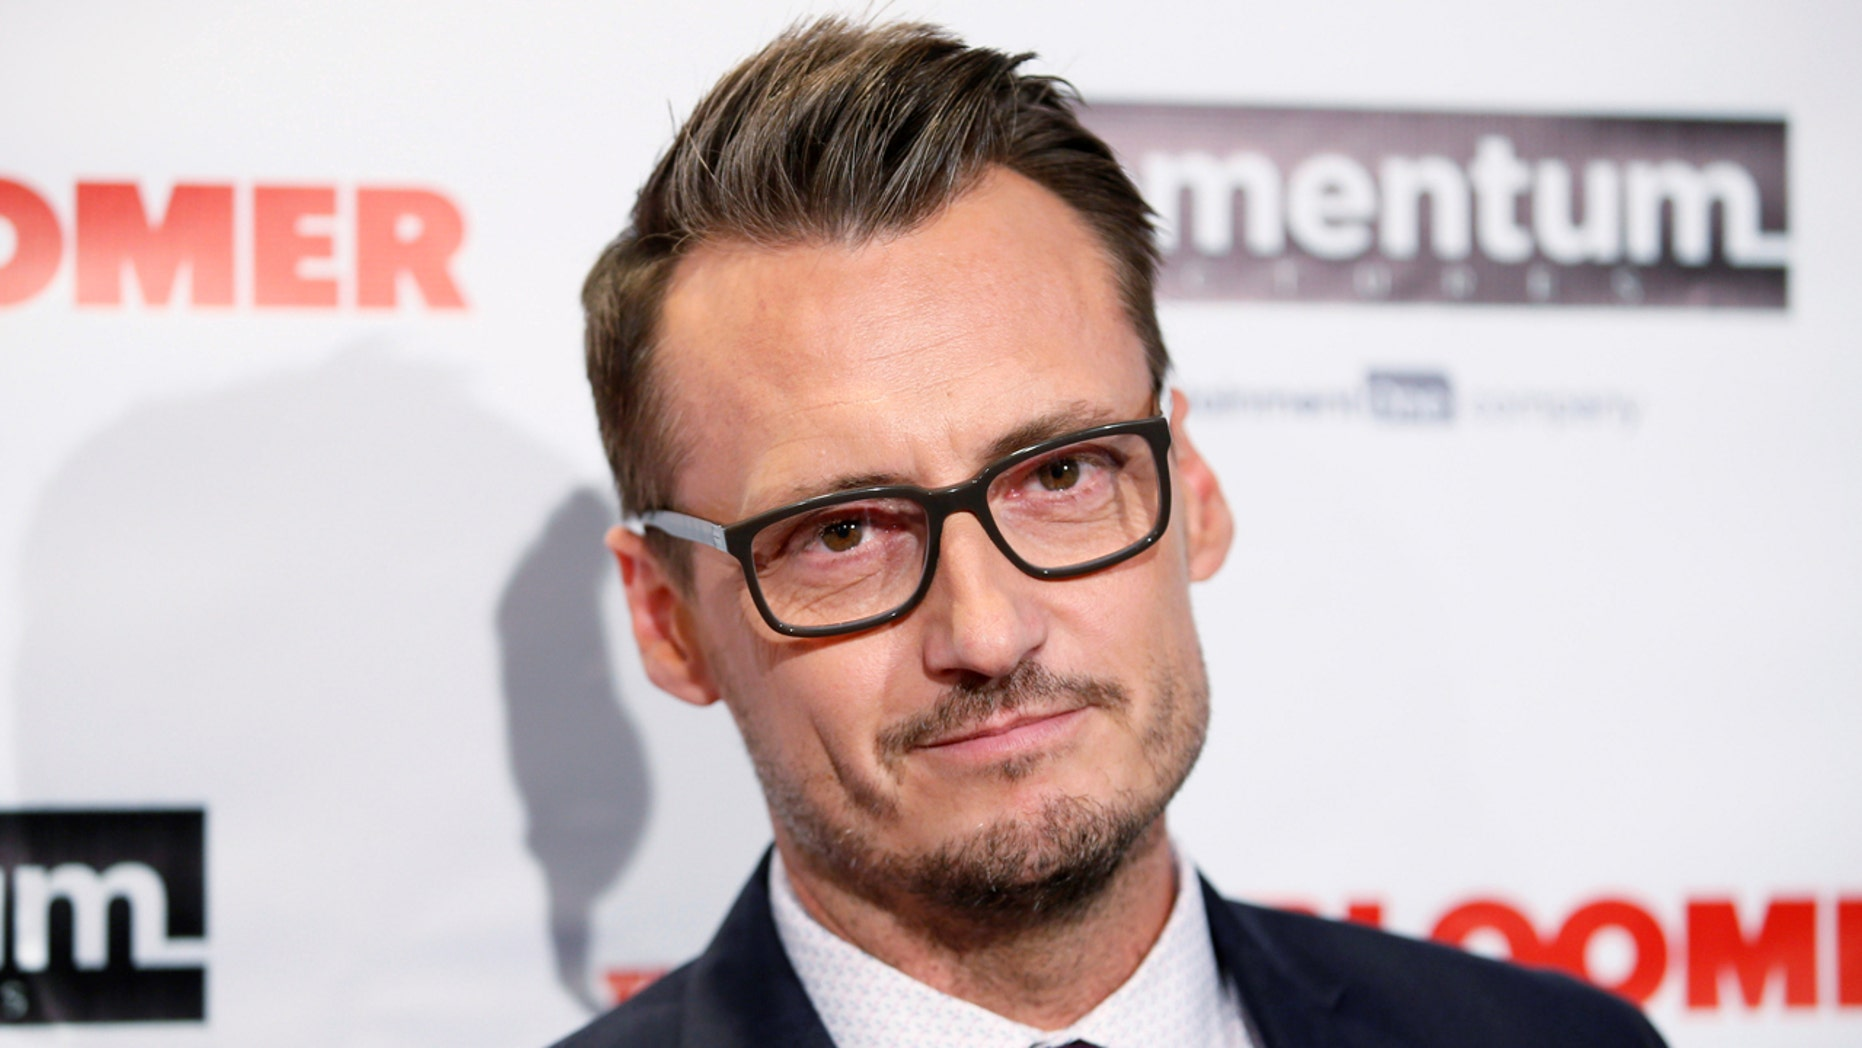 For 'E! News' correspondent was fired from his post after being accused of sexual misconduct in 2017.